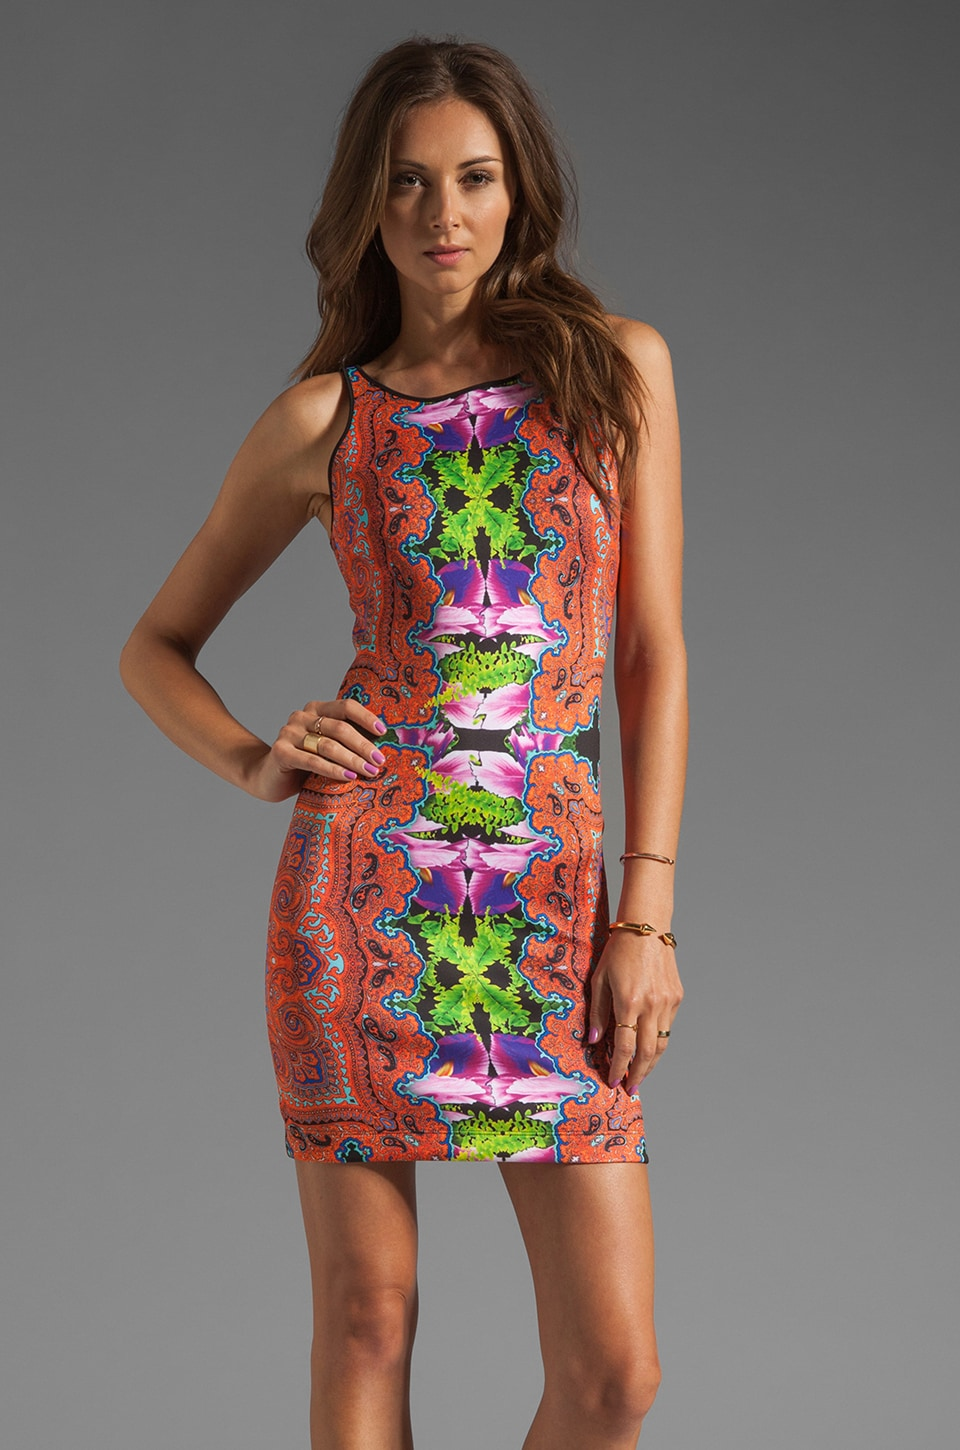 Clover Canyon Orchid Trip Neoprene Dress in Multi